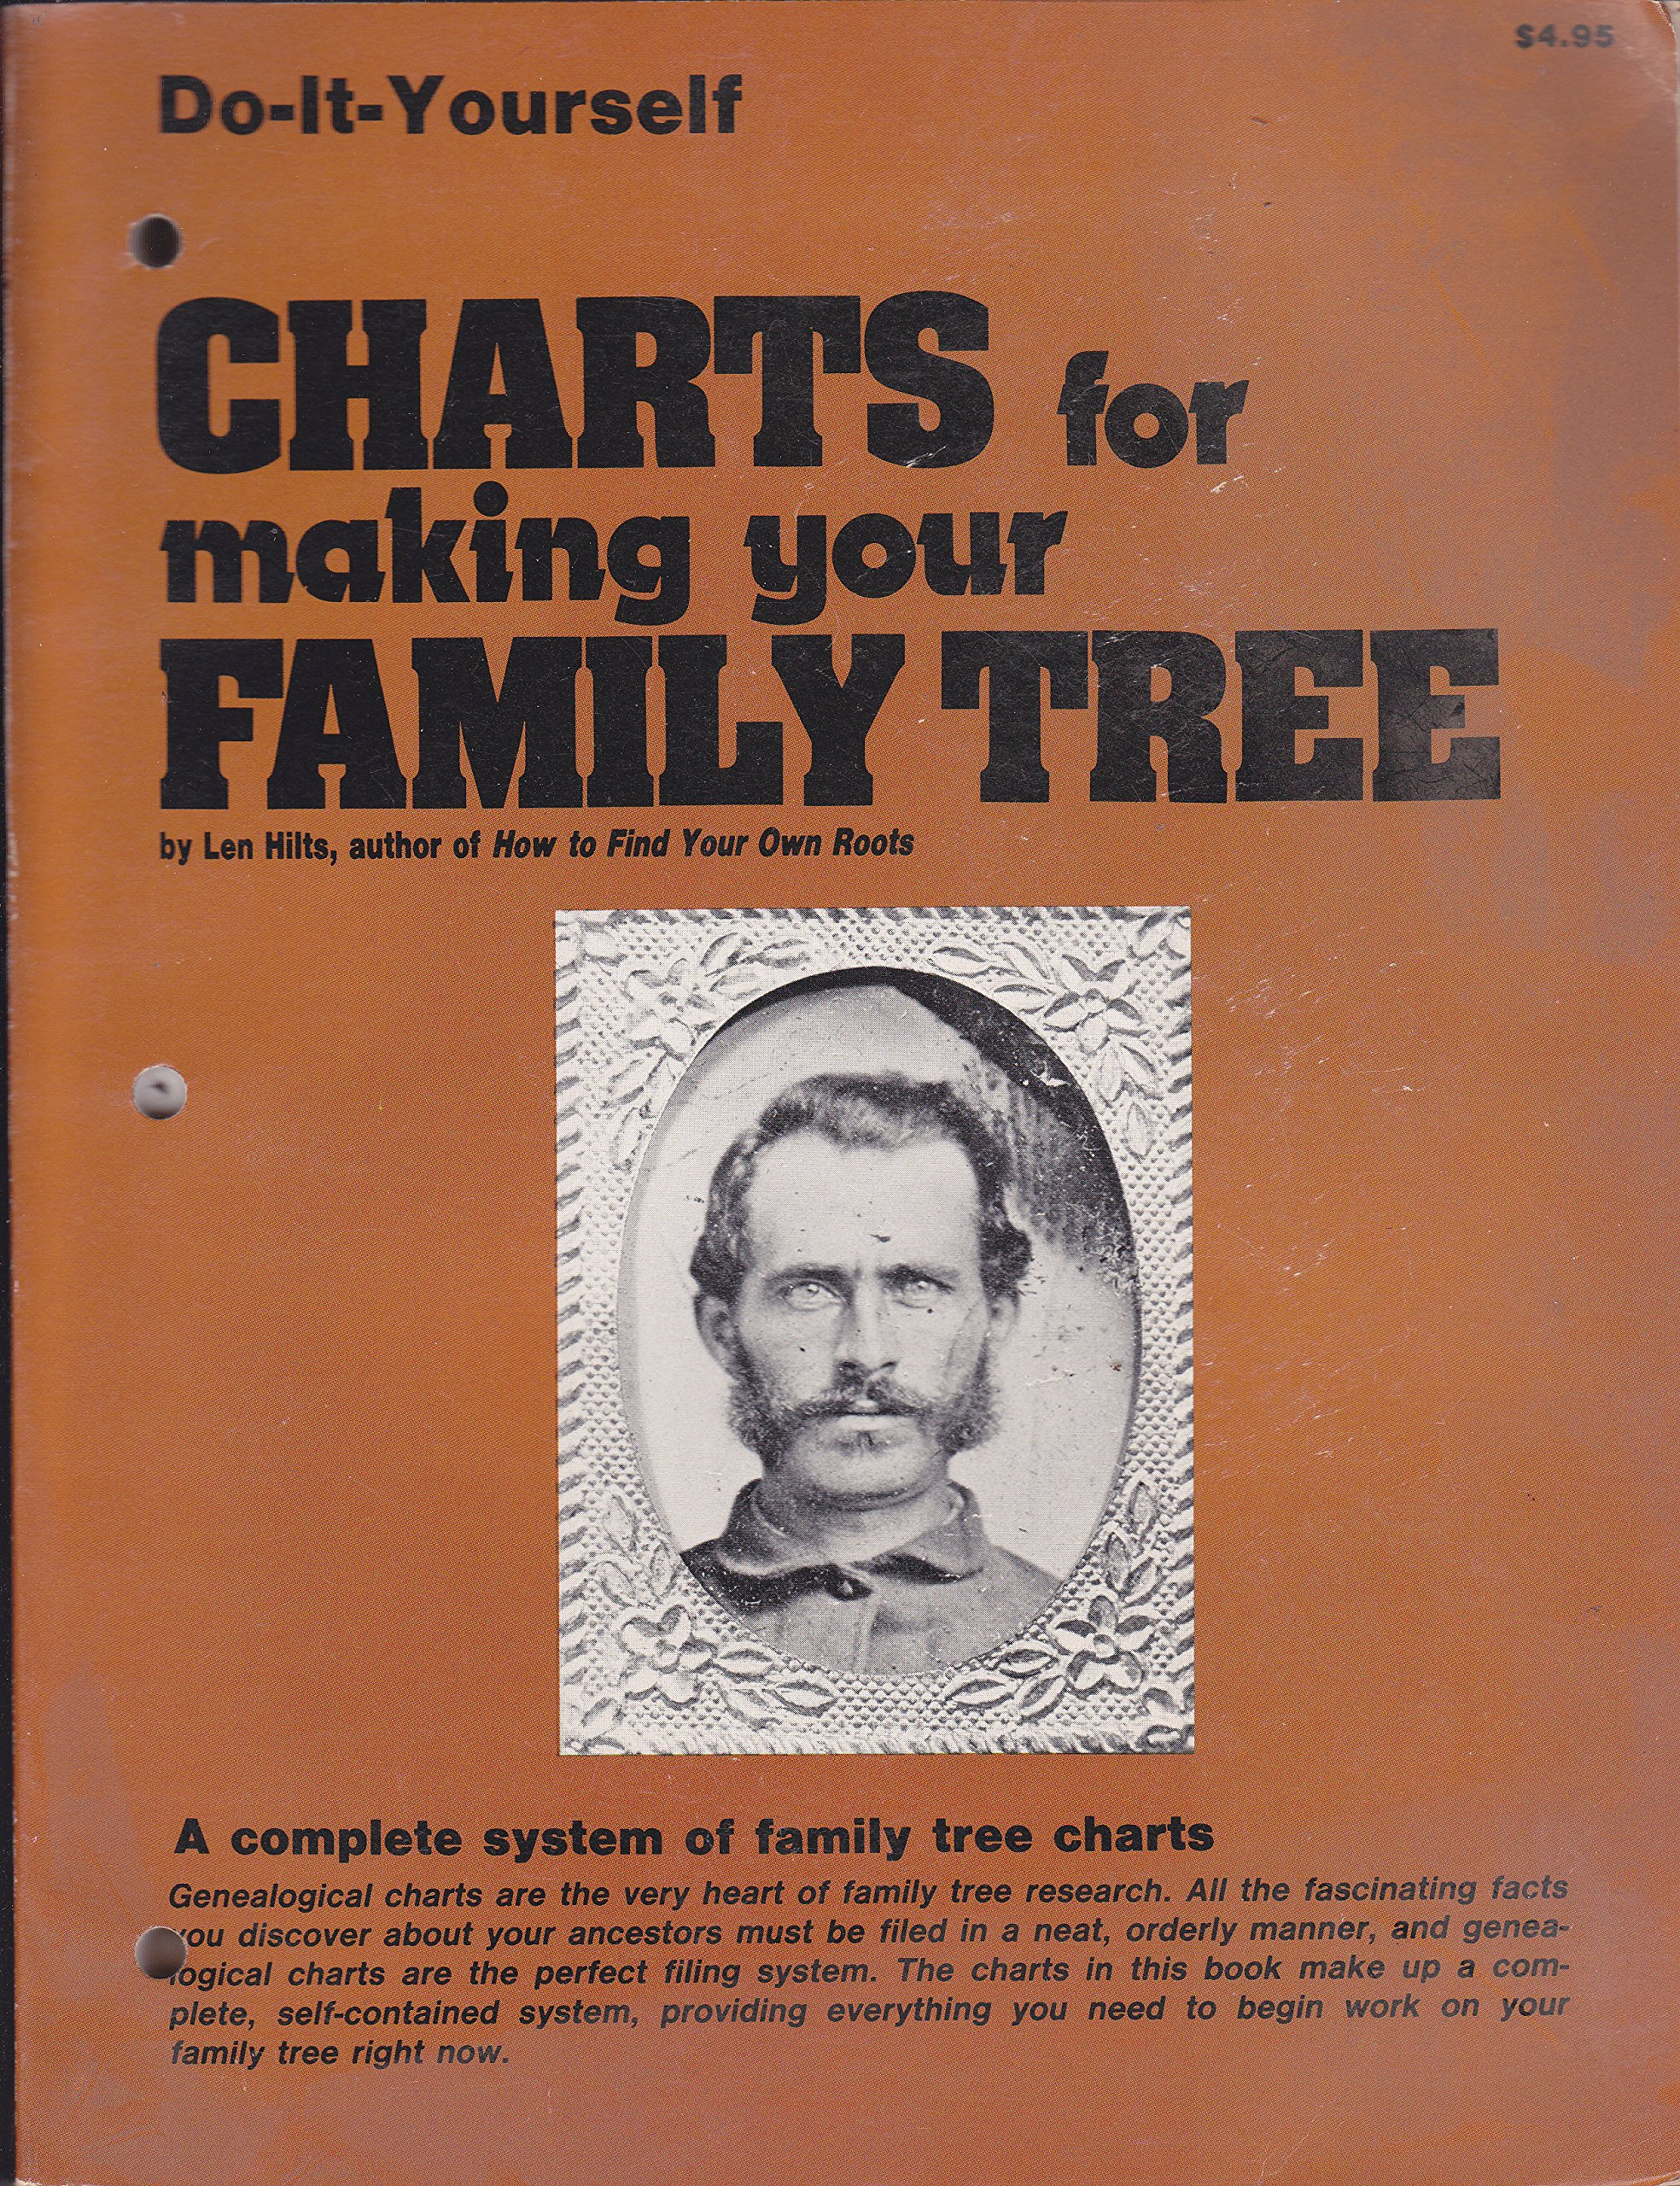 charts for making your family tree len hilts amazon com books